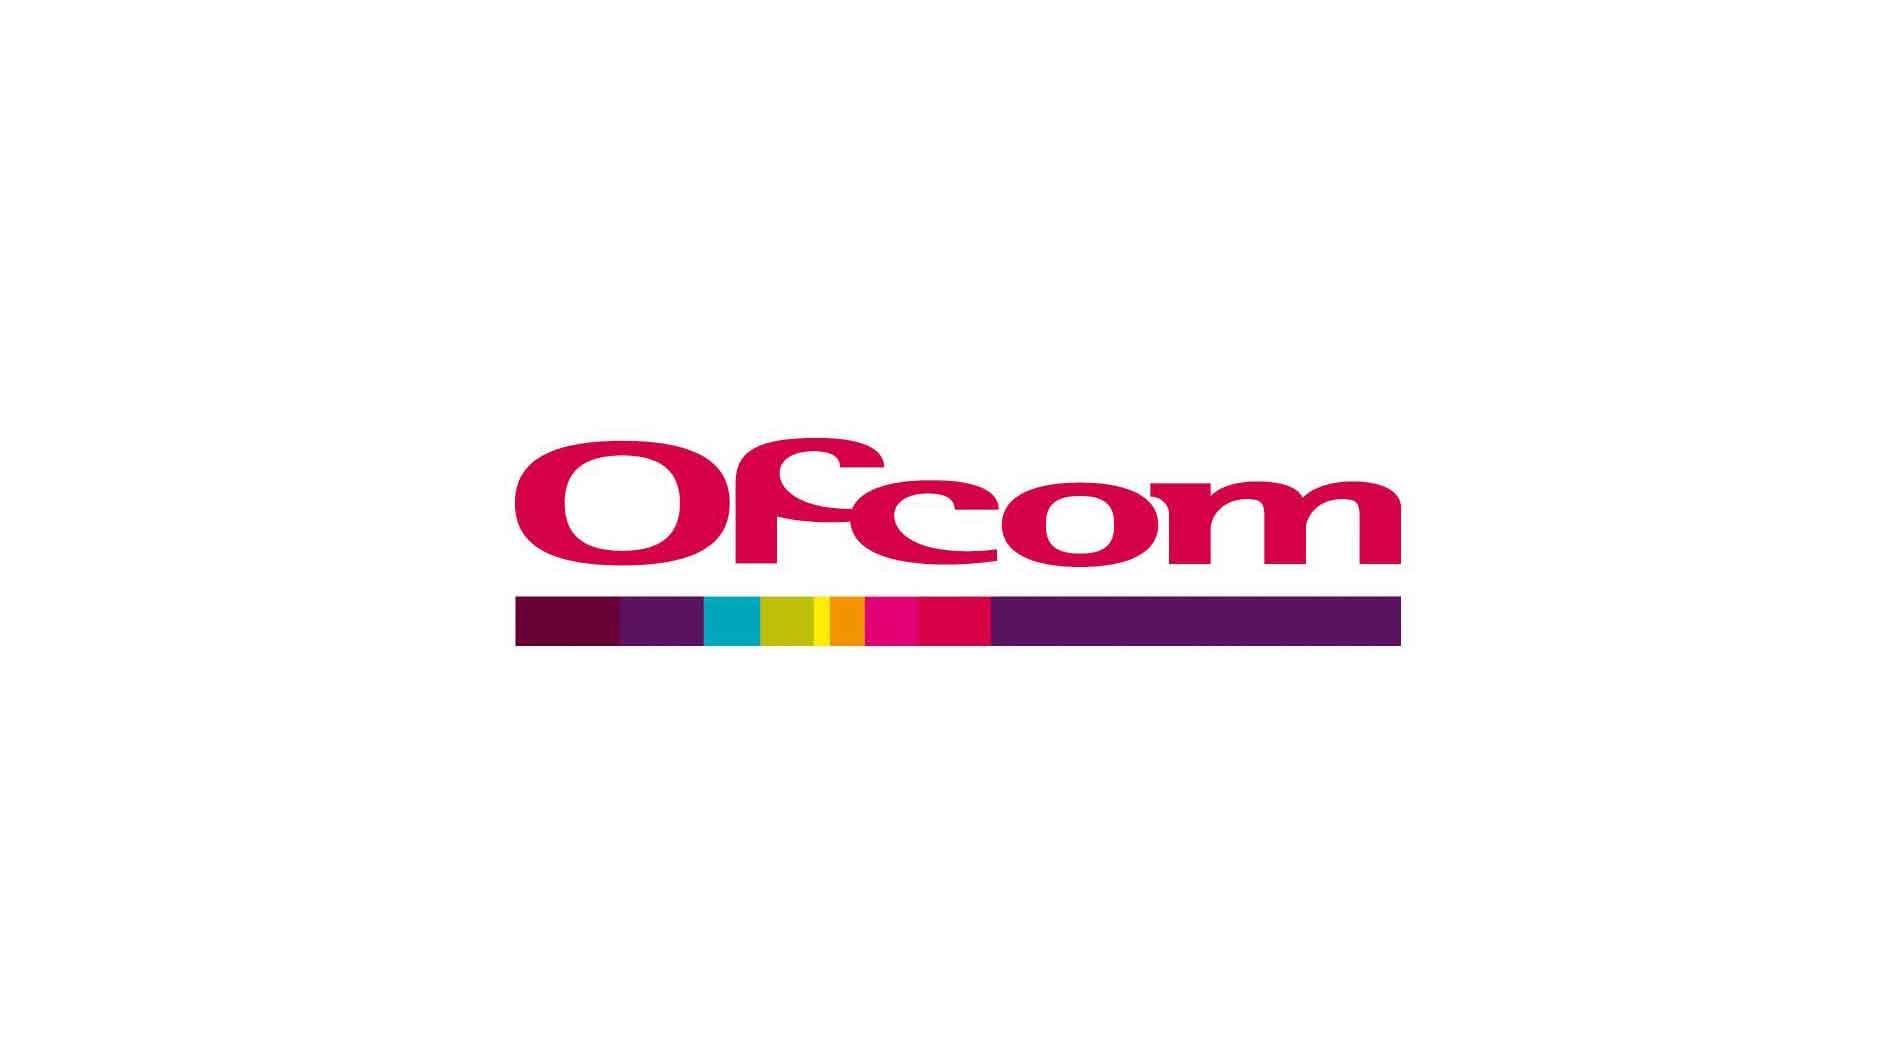 Ofcom: Note to broadcasters, 6 June 2011